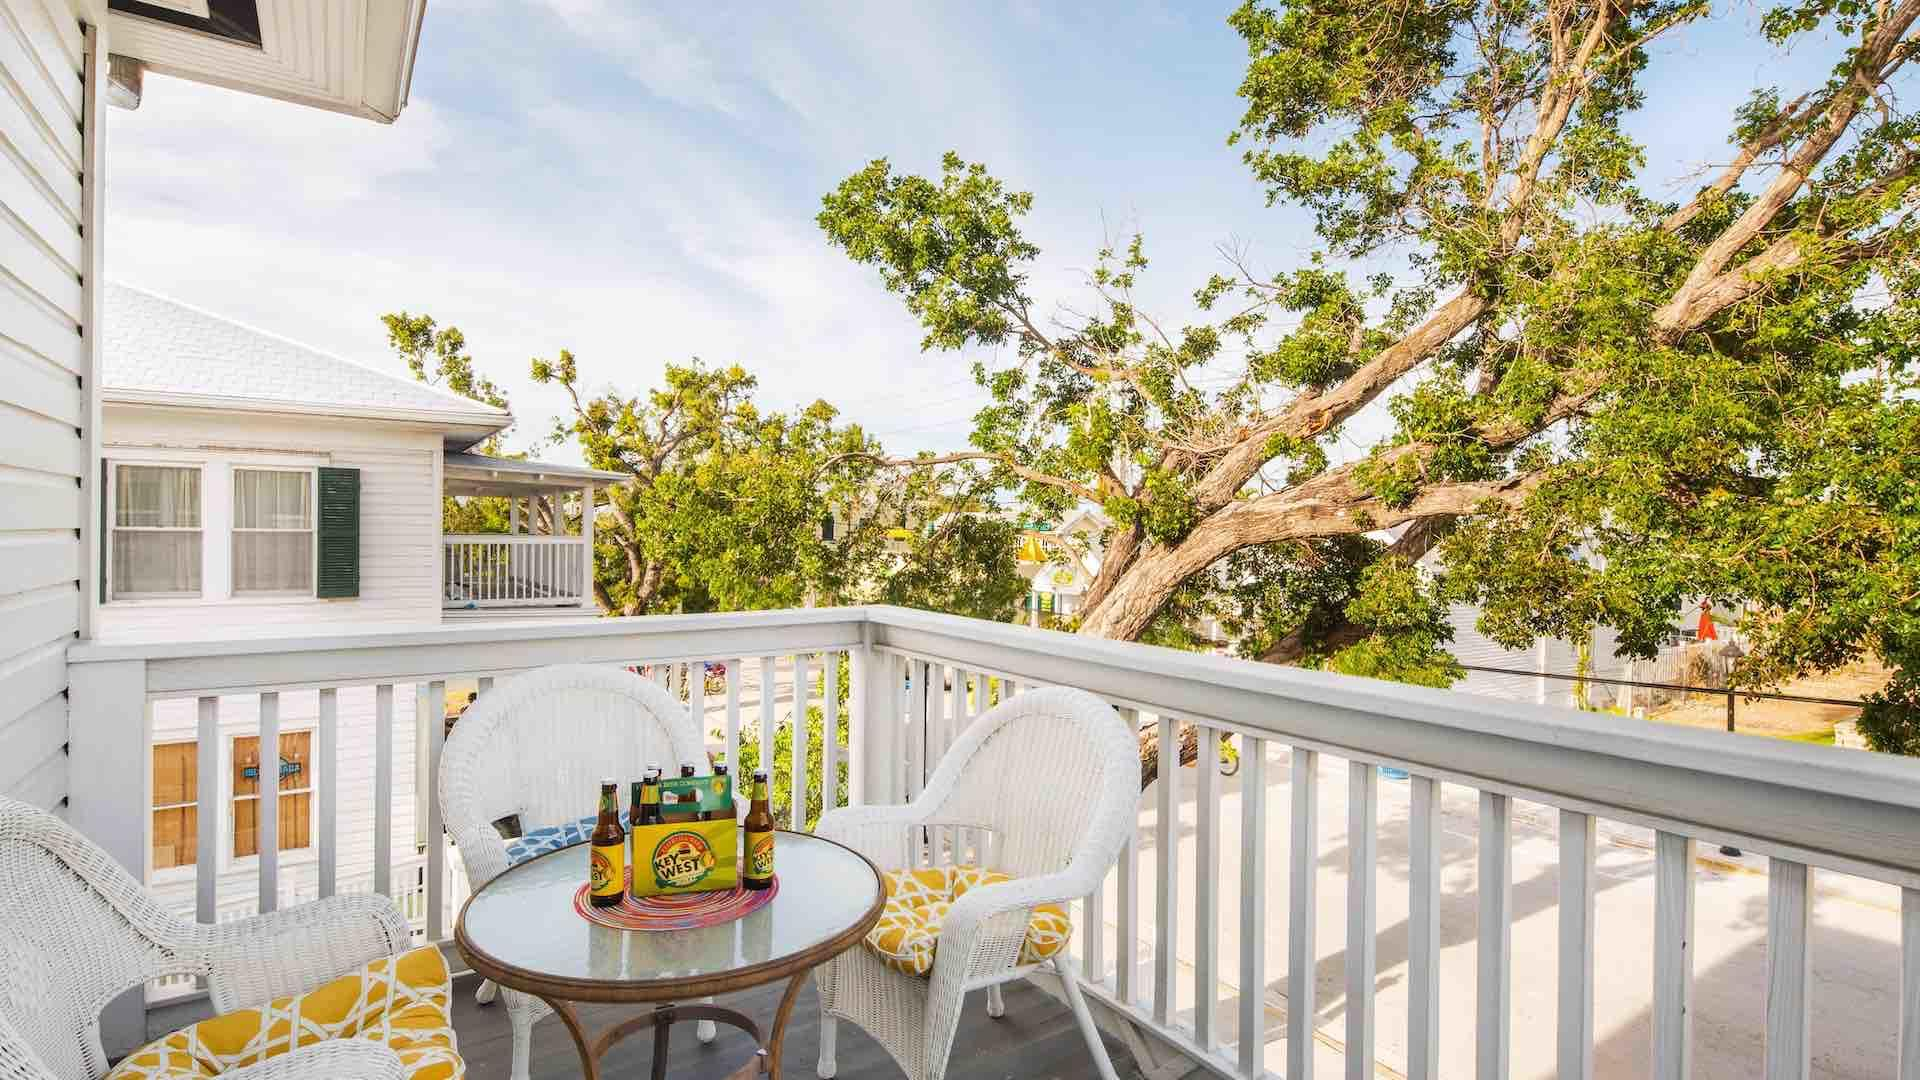 Enjoy your own private happy hour on the balcony...